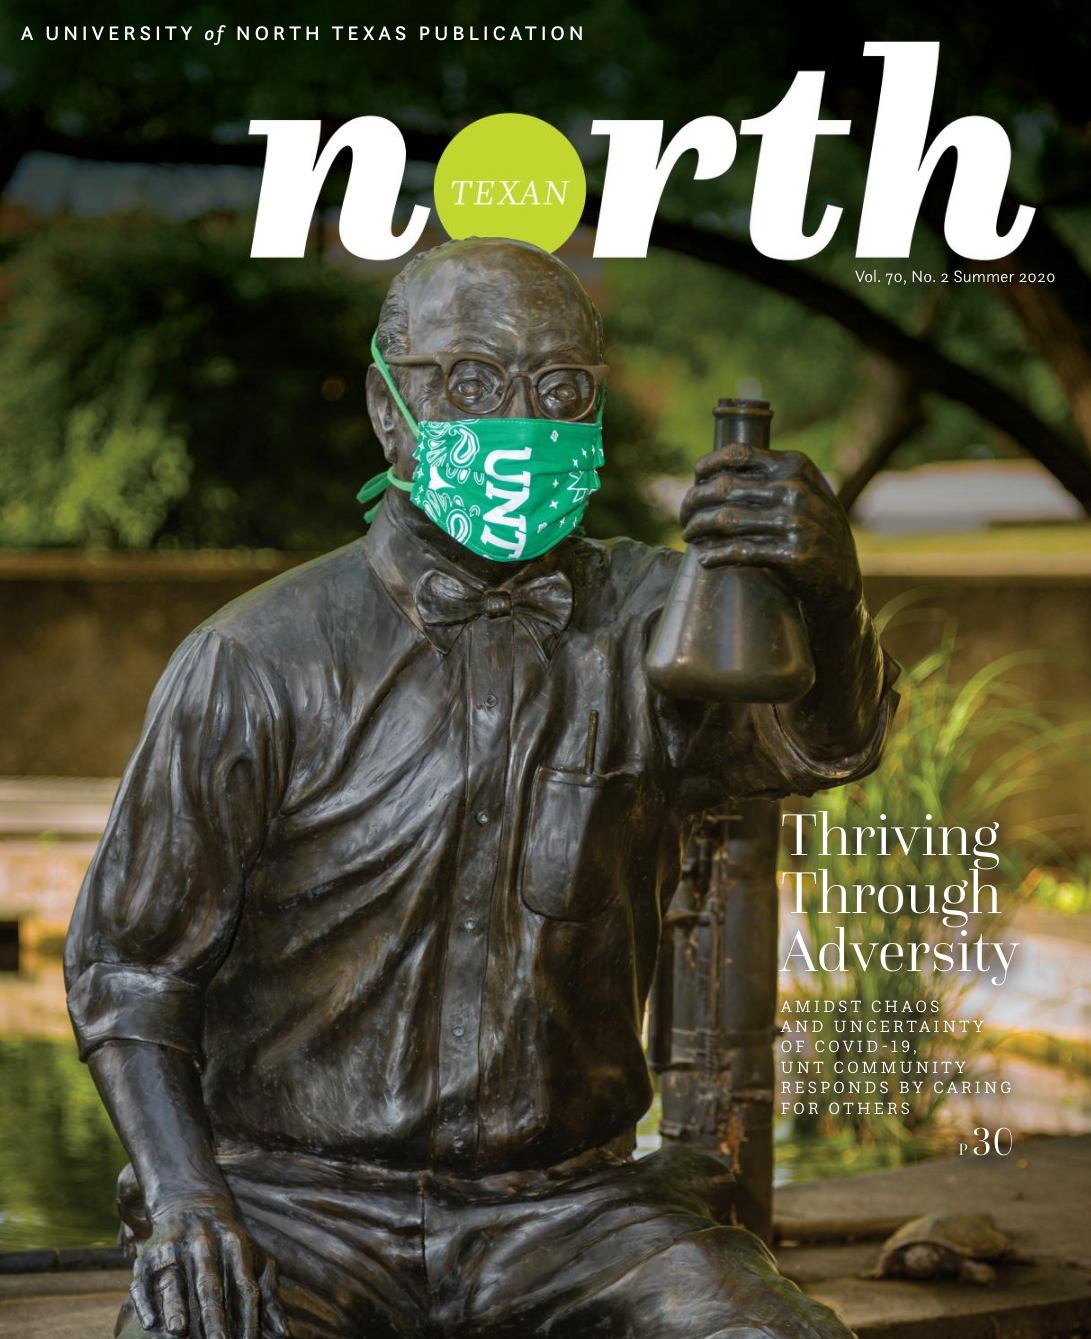 The Summer 2020 issue of the North Texan featured our heroes of COVID-19.